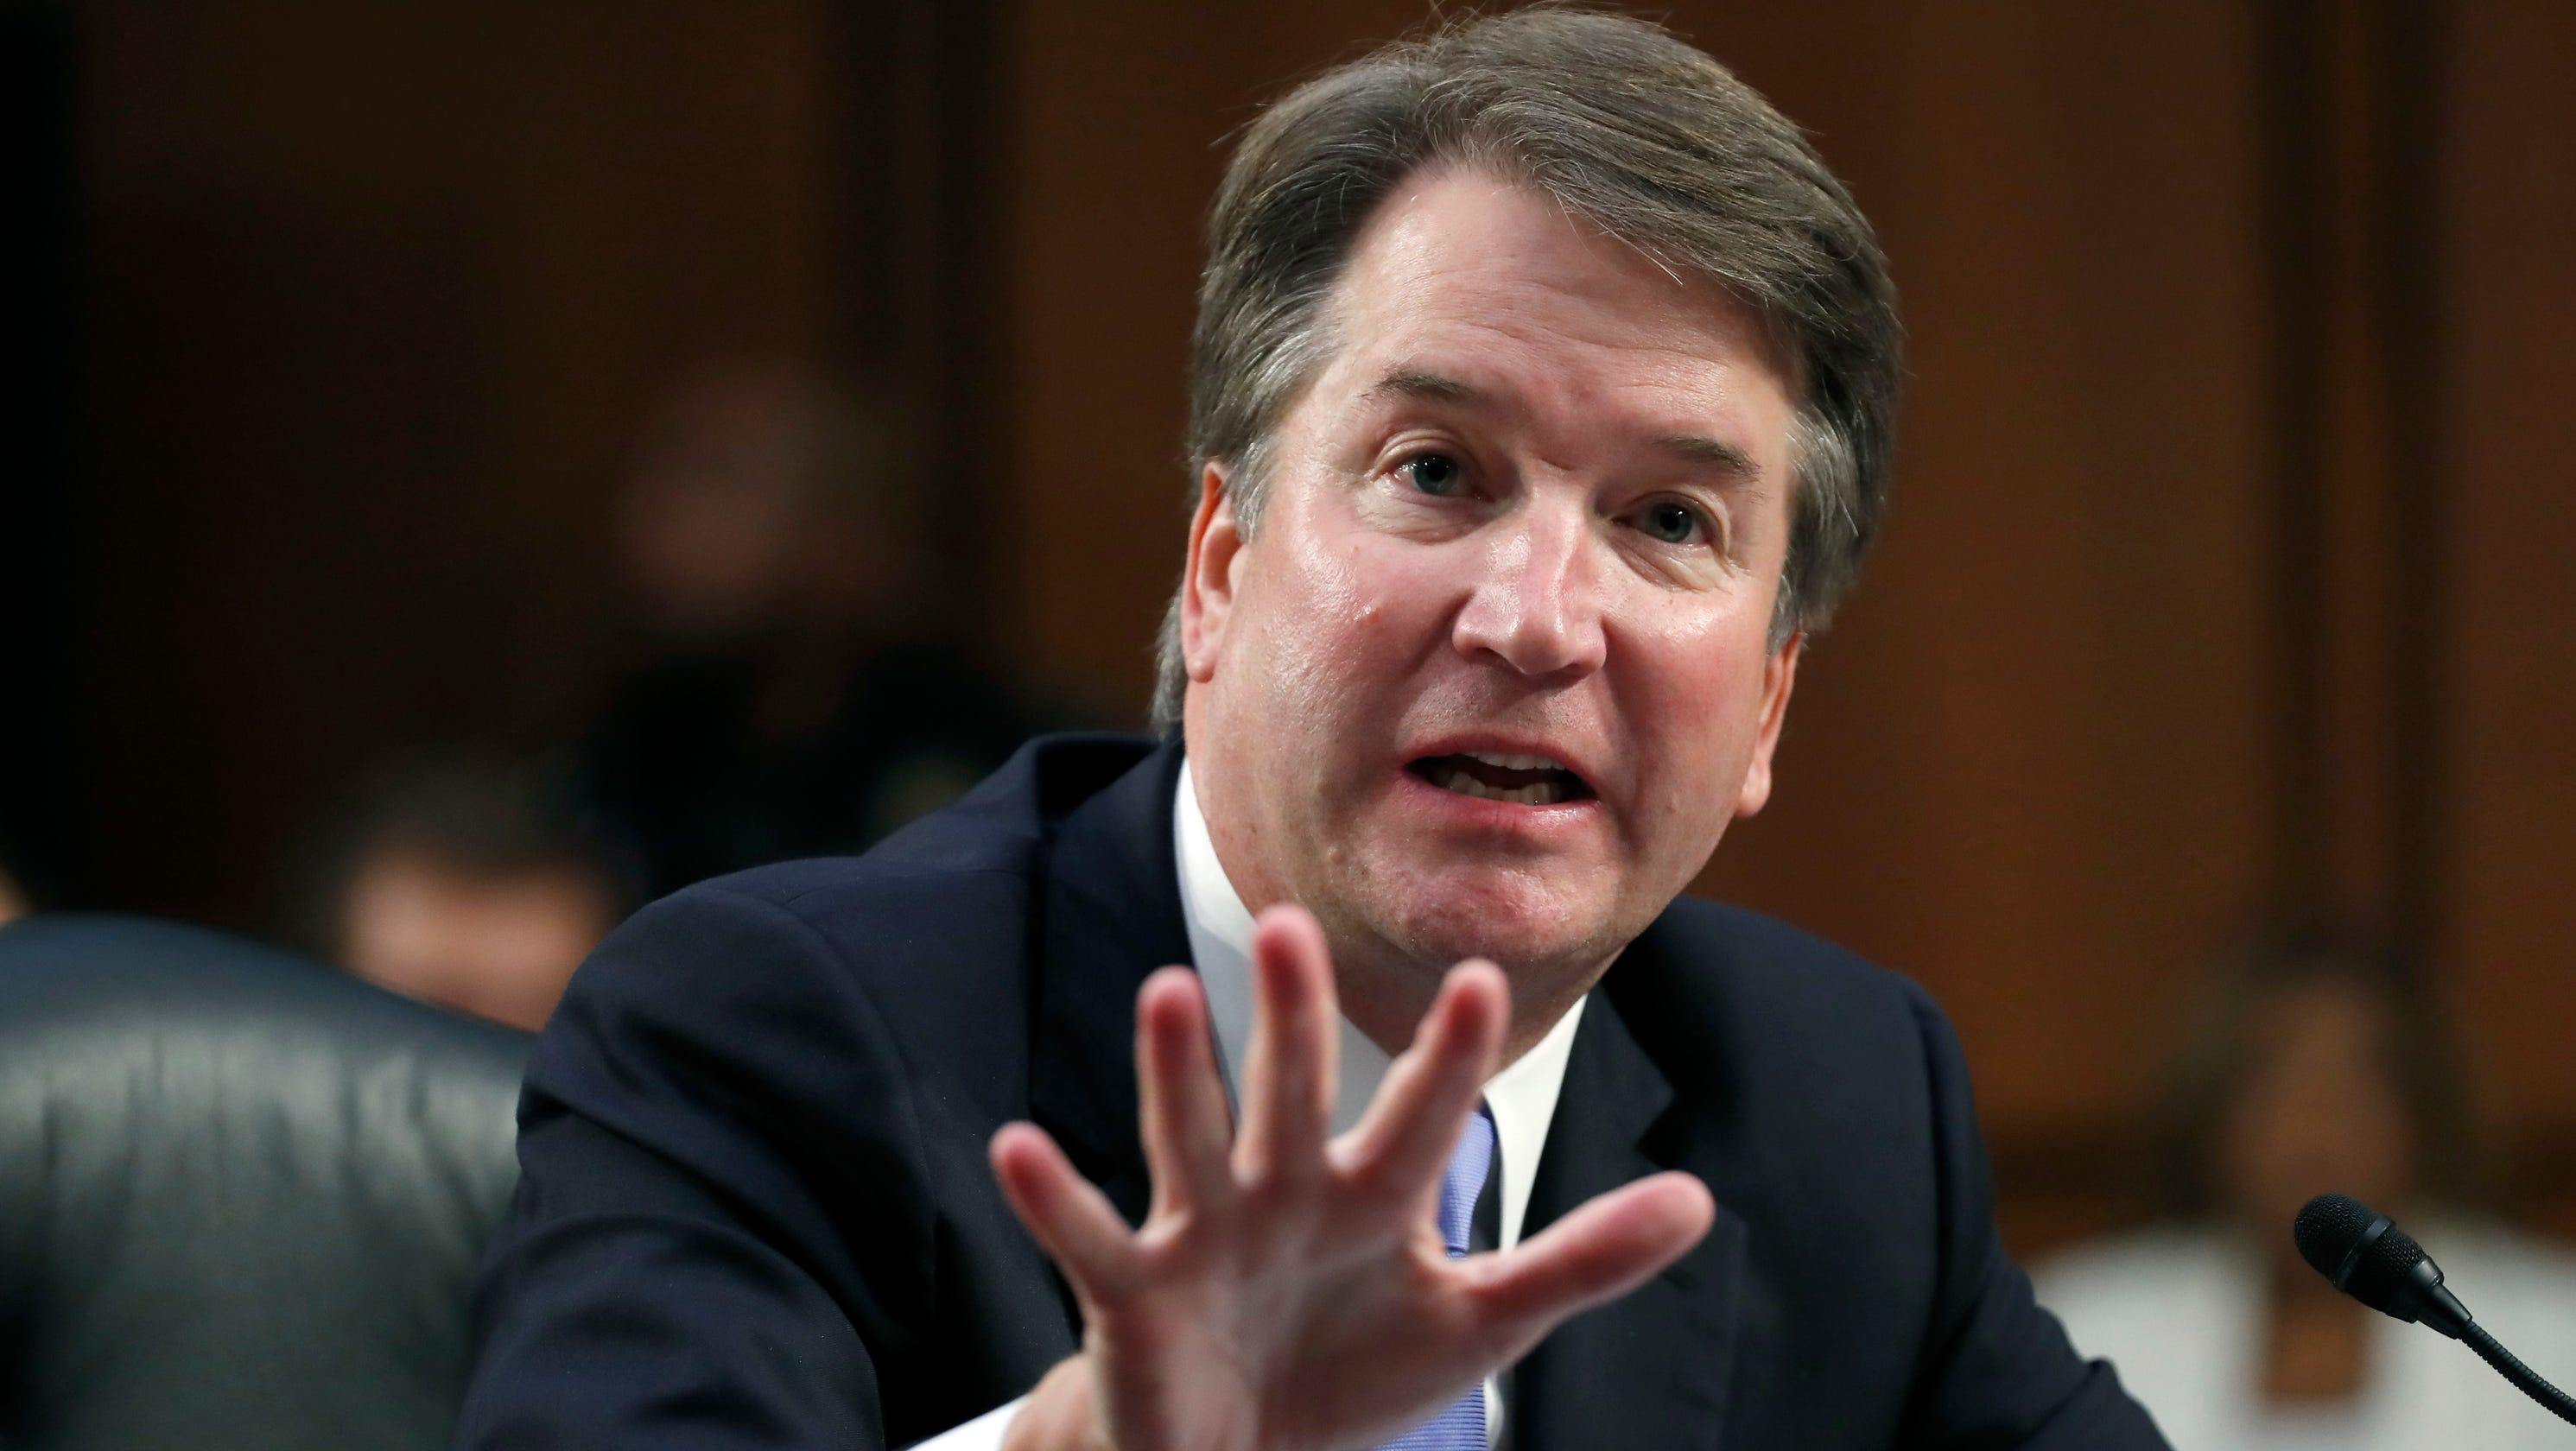 Brett Kavanaugh: Supreme Court nominee avoids legal minefields